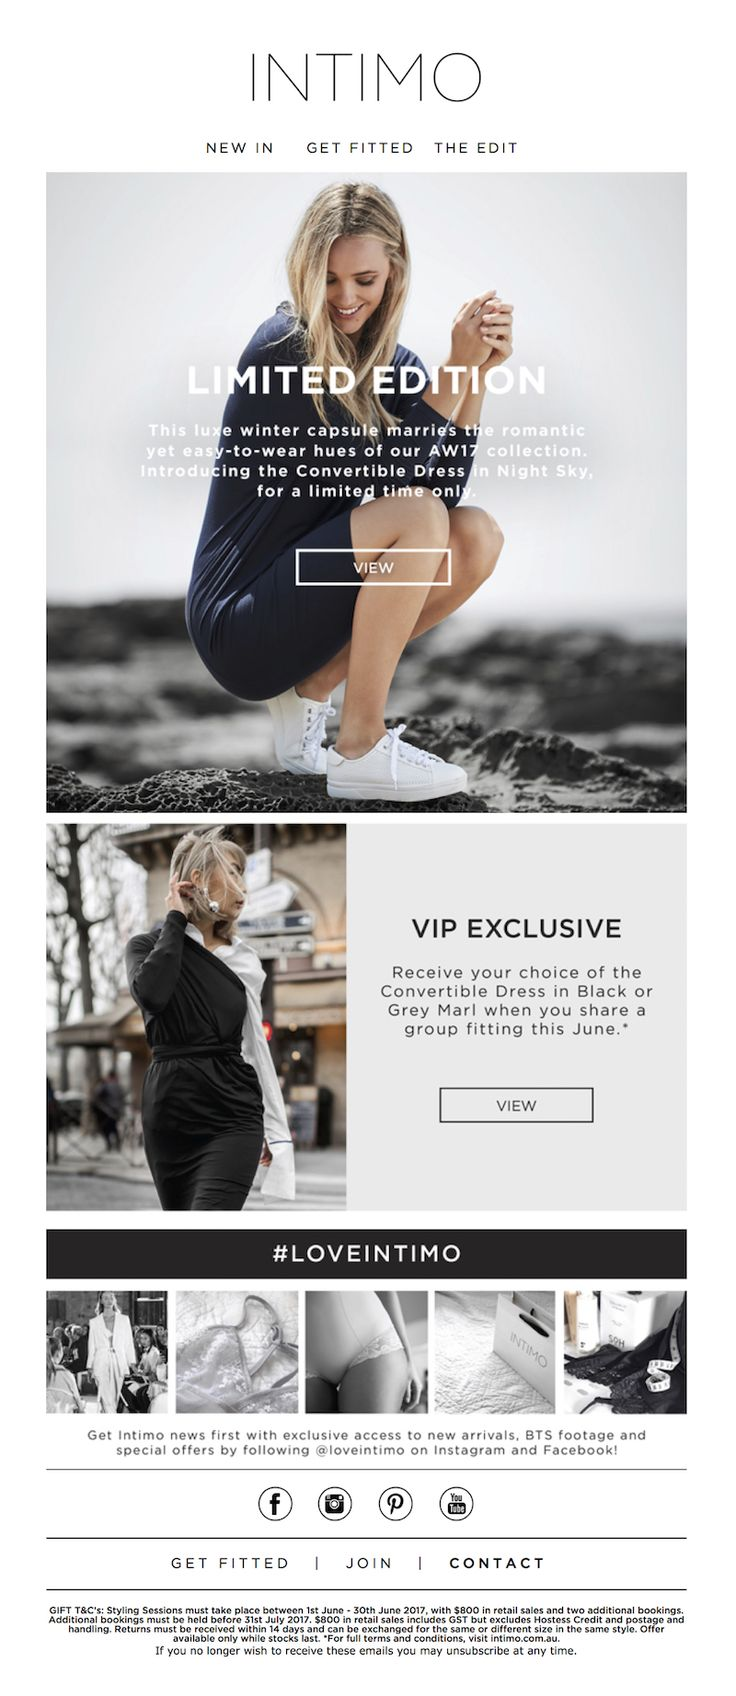 """Intimo Lingerie: Intimo VIP Email """"Limited Edition"""" Introducing the Convertible Dress in Night Sky. www.intimo.com.au"""